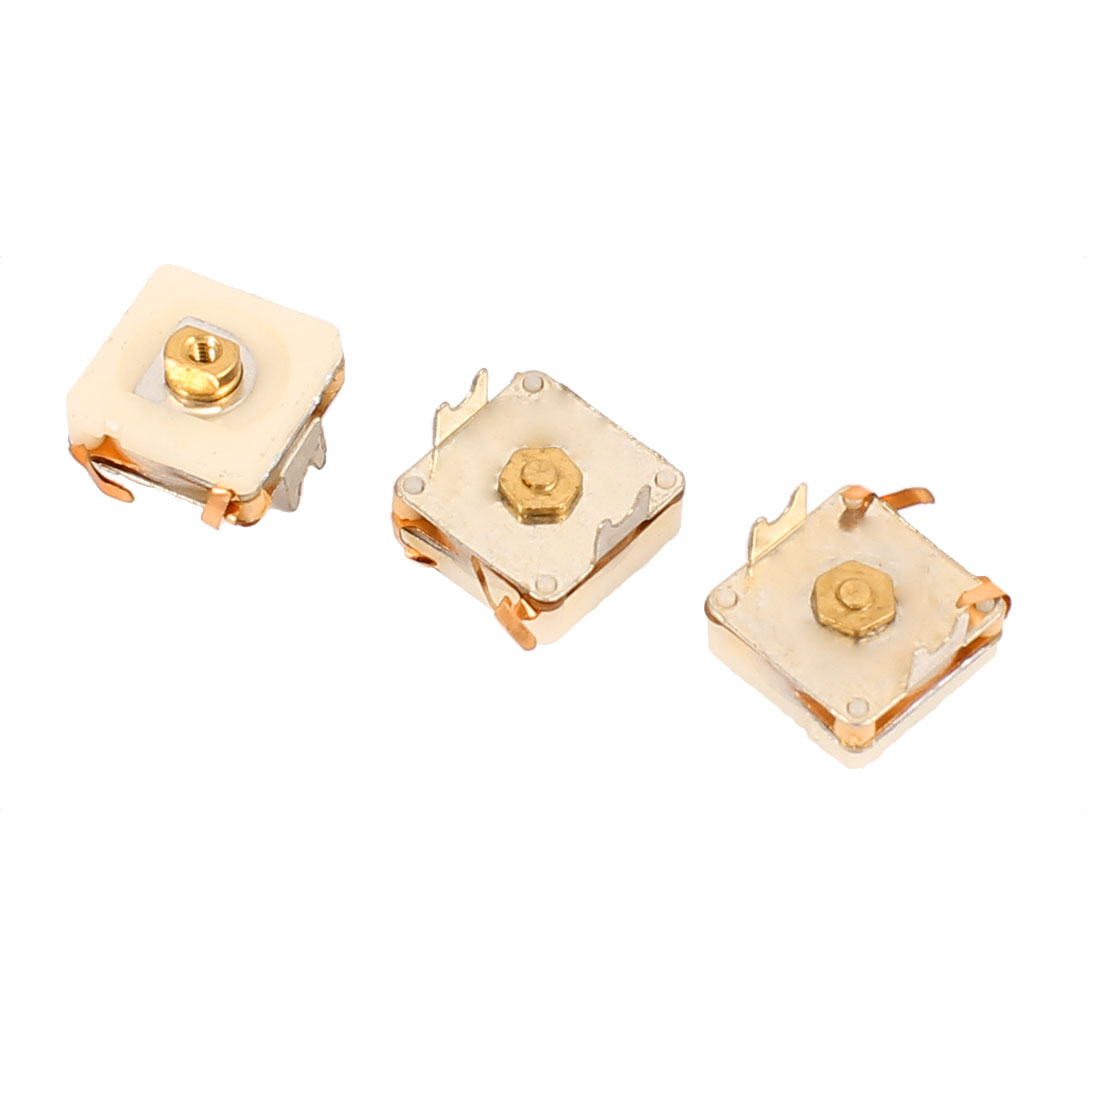 3pcs PVC-206 206pF Medium Variodencer PCB Trimmer Tuning Variable Adjustable Capacitors for Radio